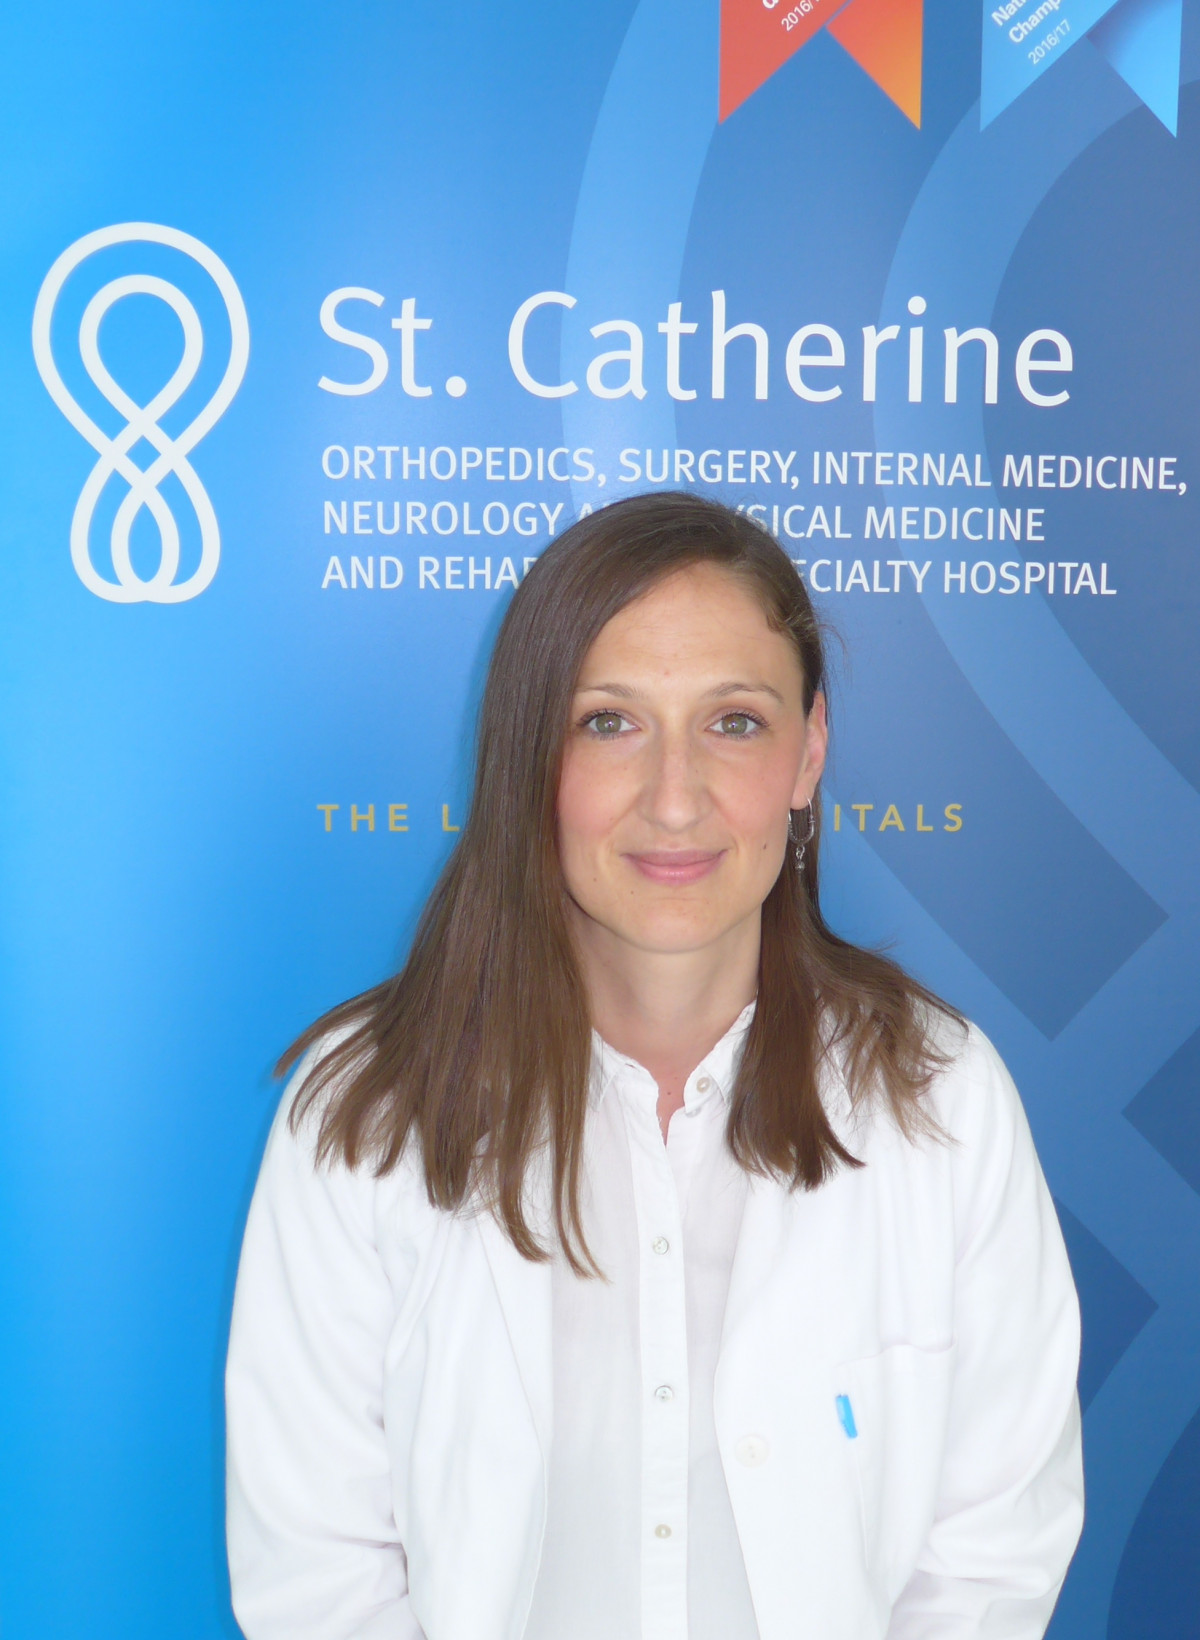 Dr. Iva Milivojević joined St. Catherine's Hospital team in 2018.